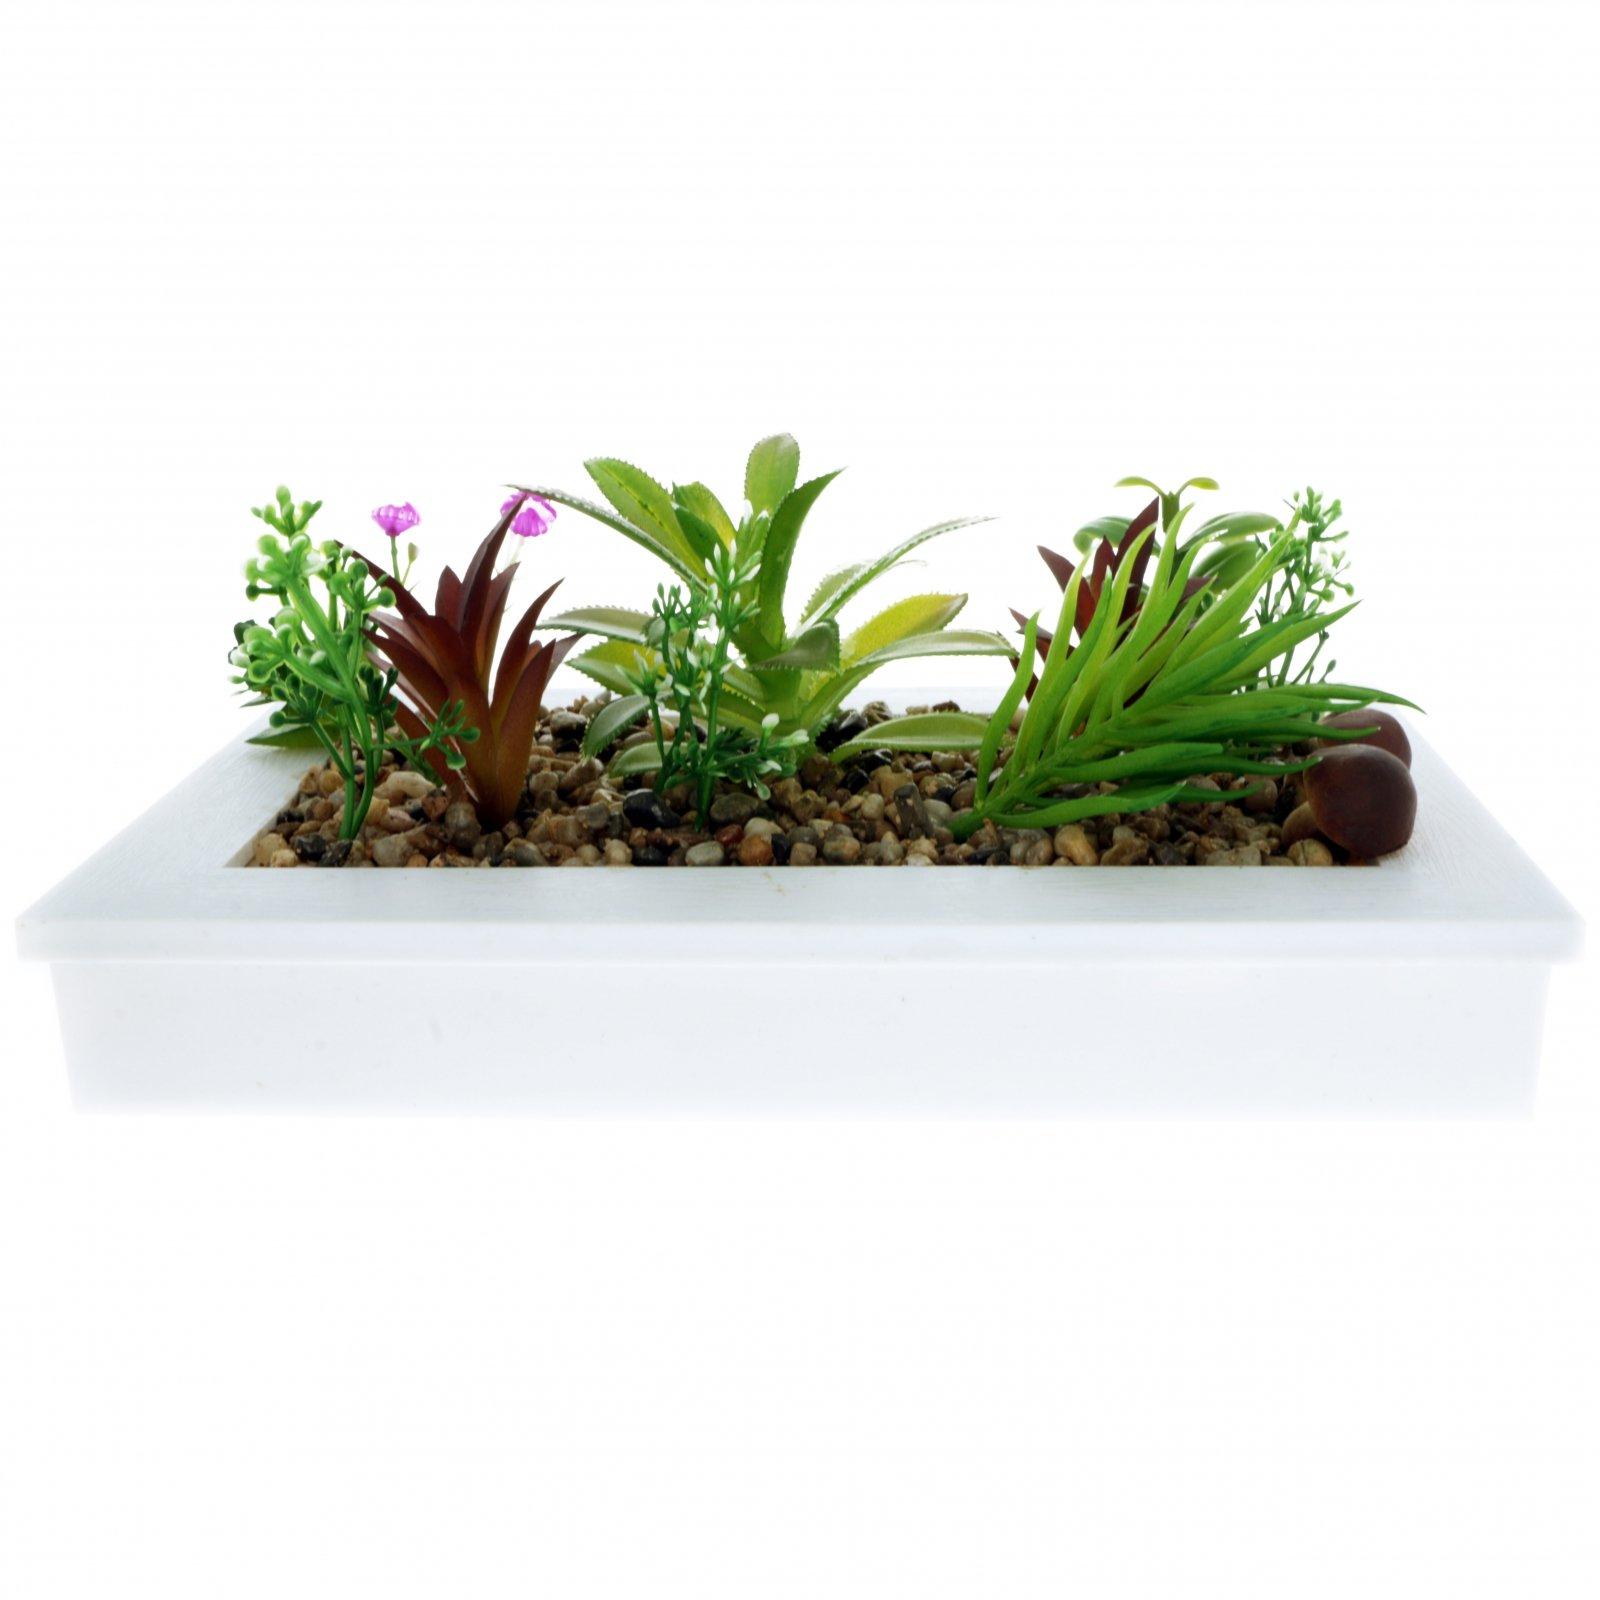 2pk Artificial Plant Garden In Planter - White